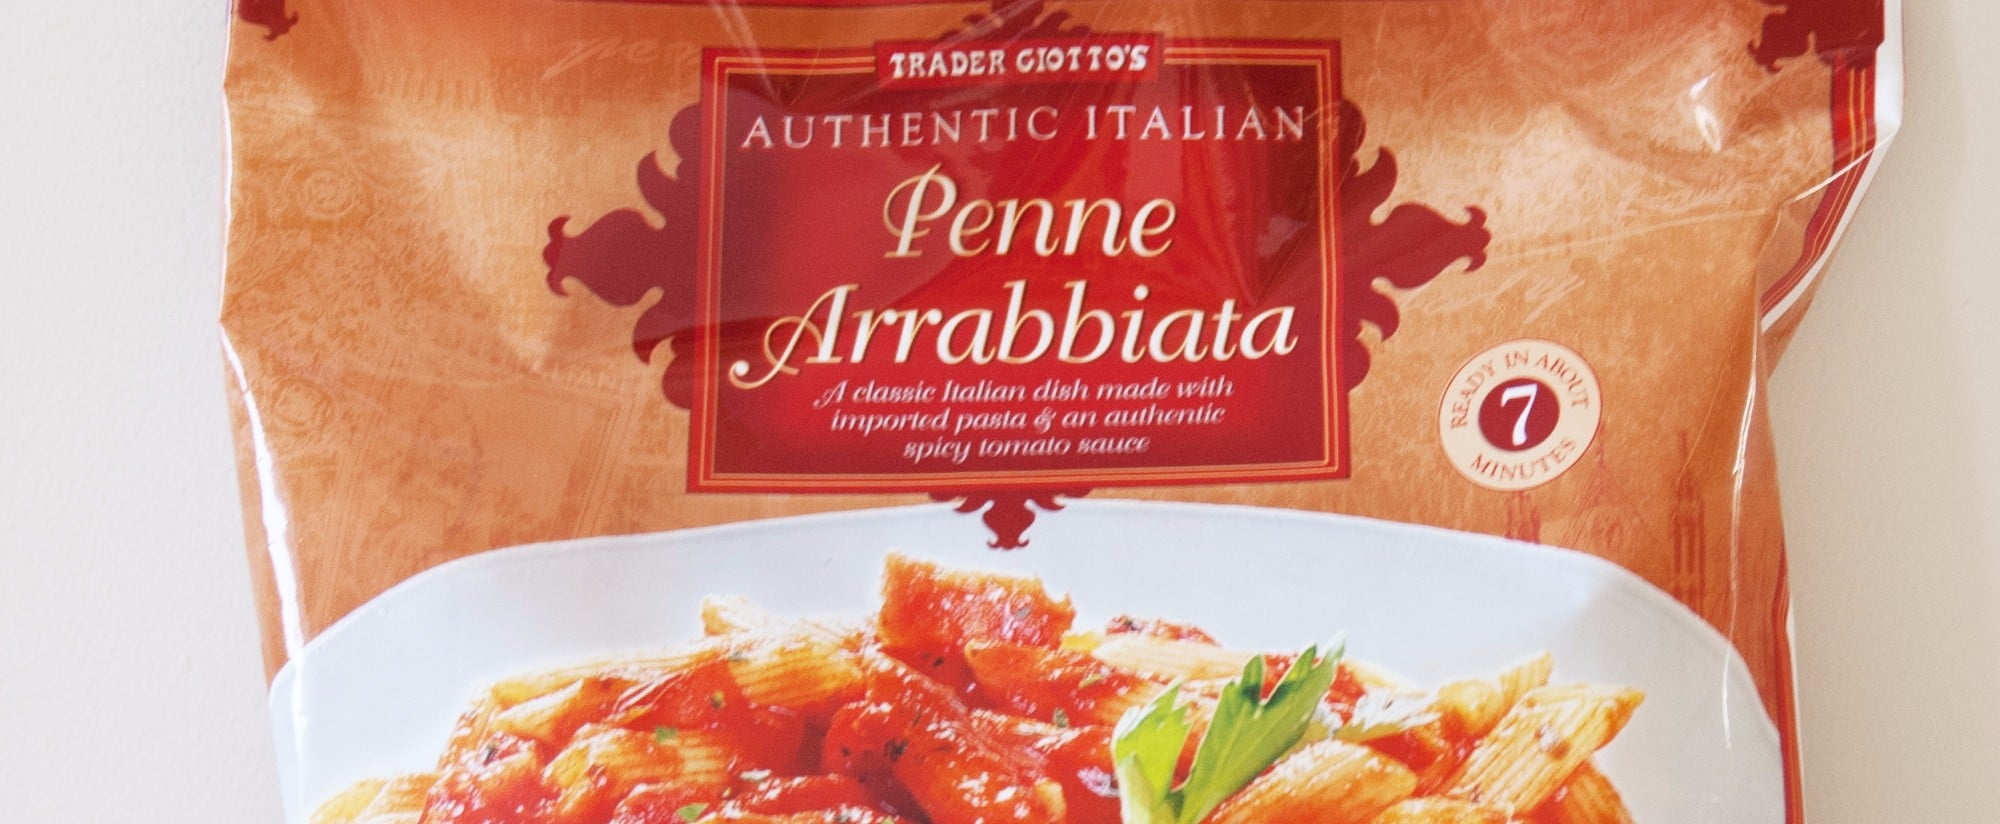 Best Italian Foods From Trader Joe's